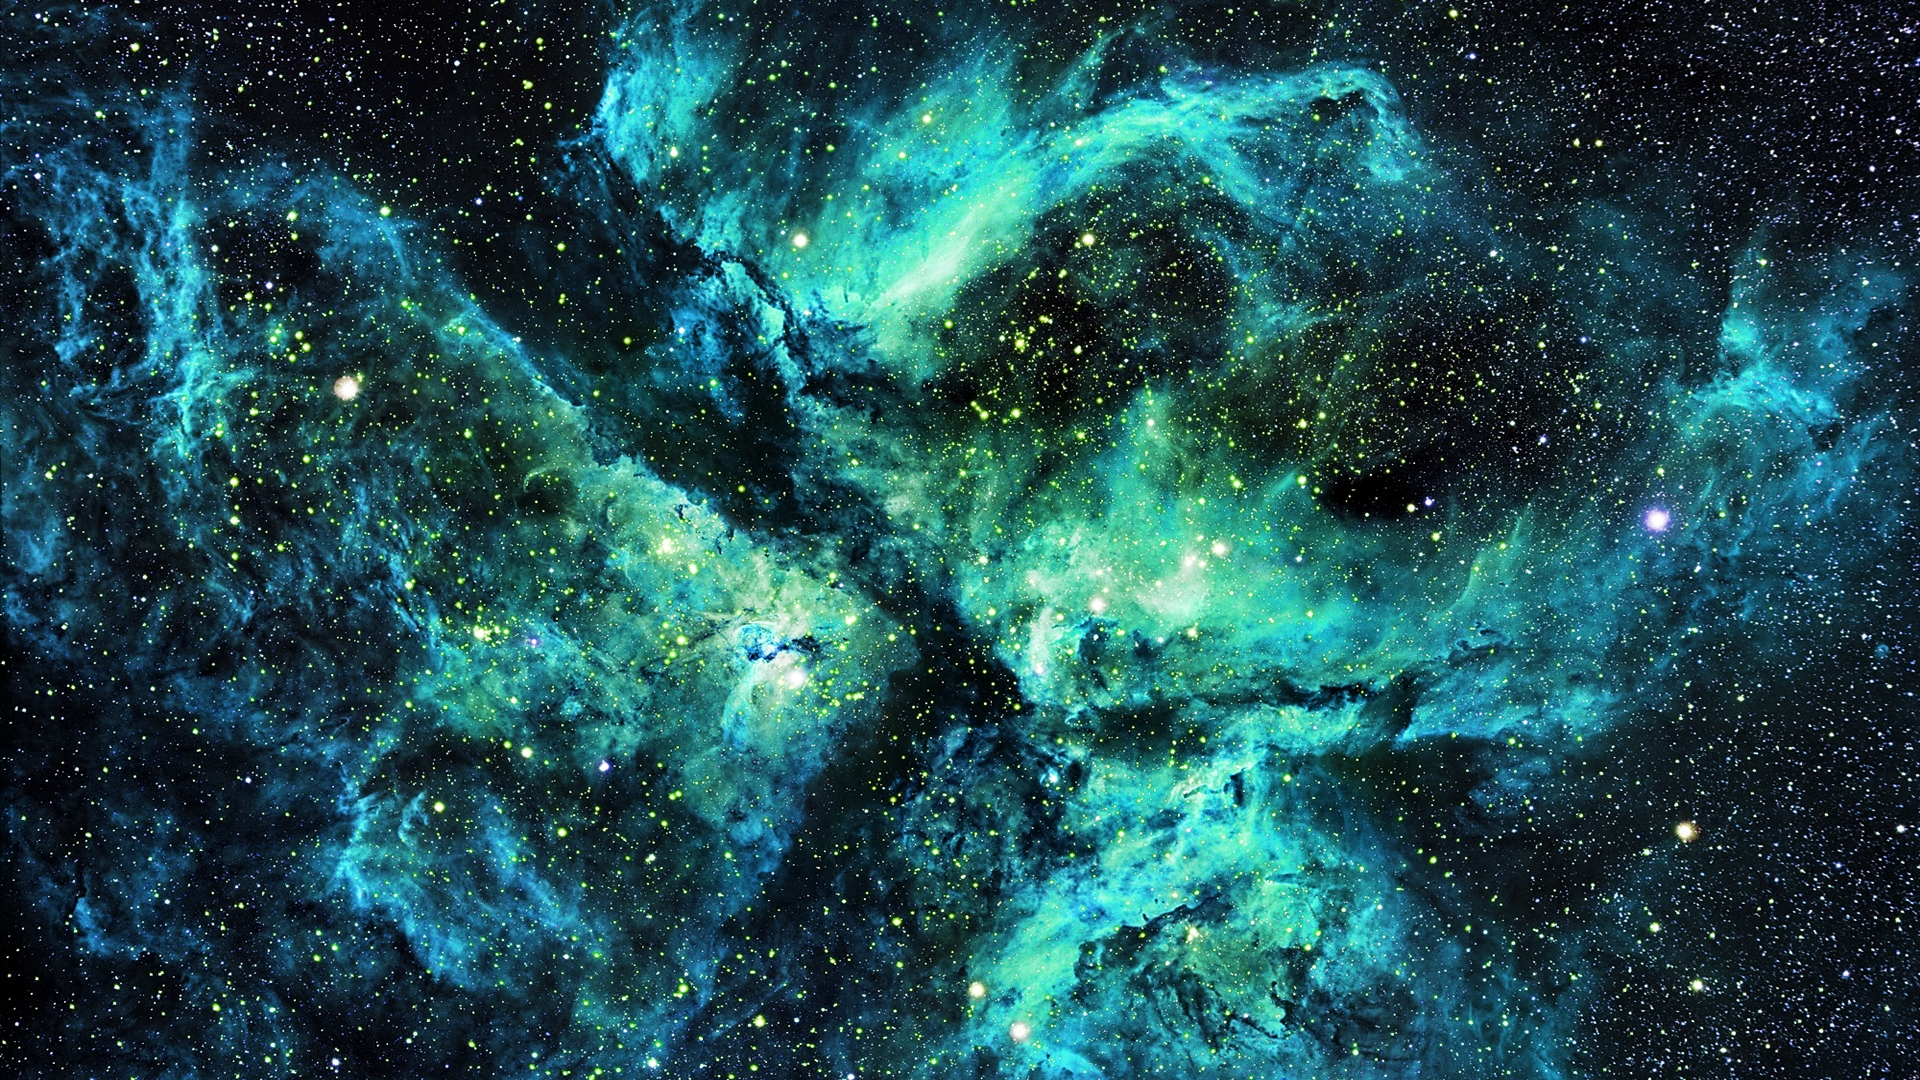 nebula hd wallpaper | 1920x1080 | #44023